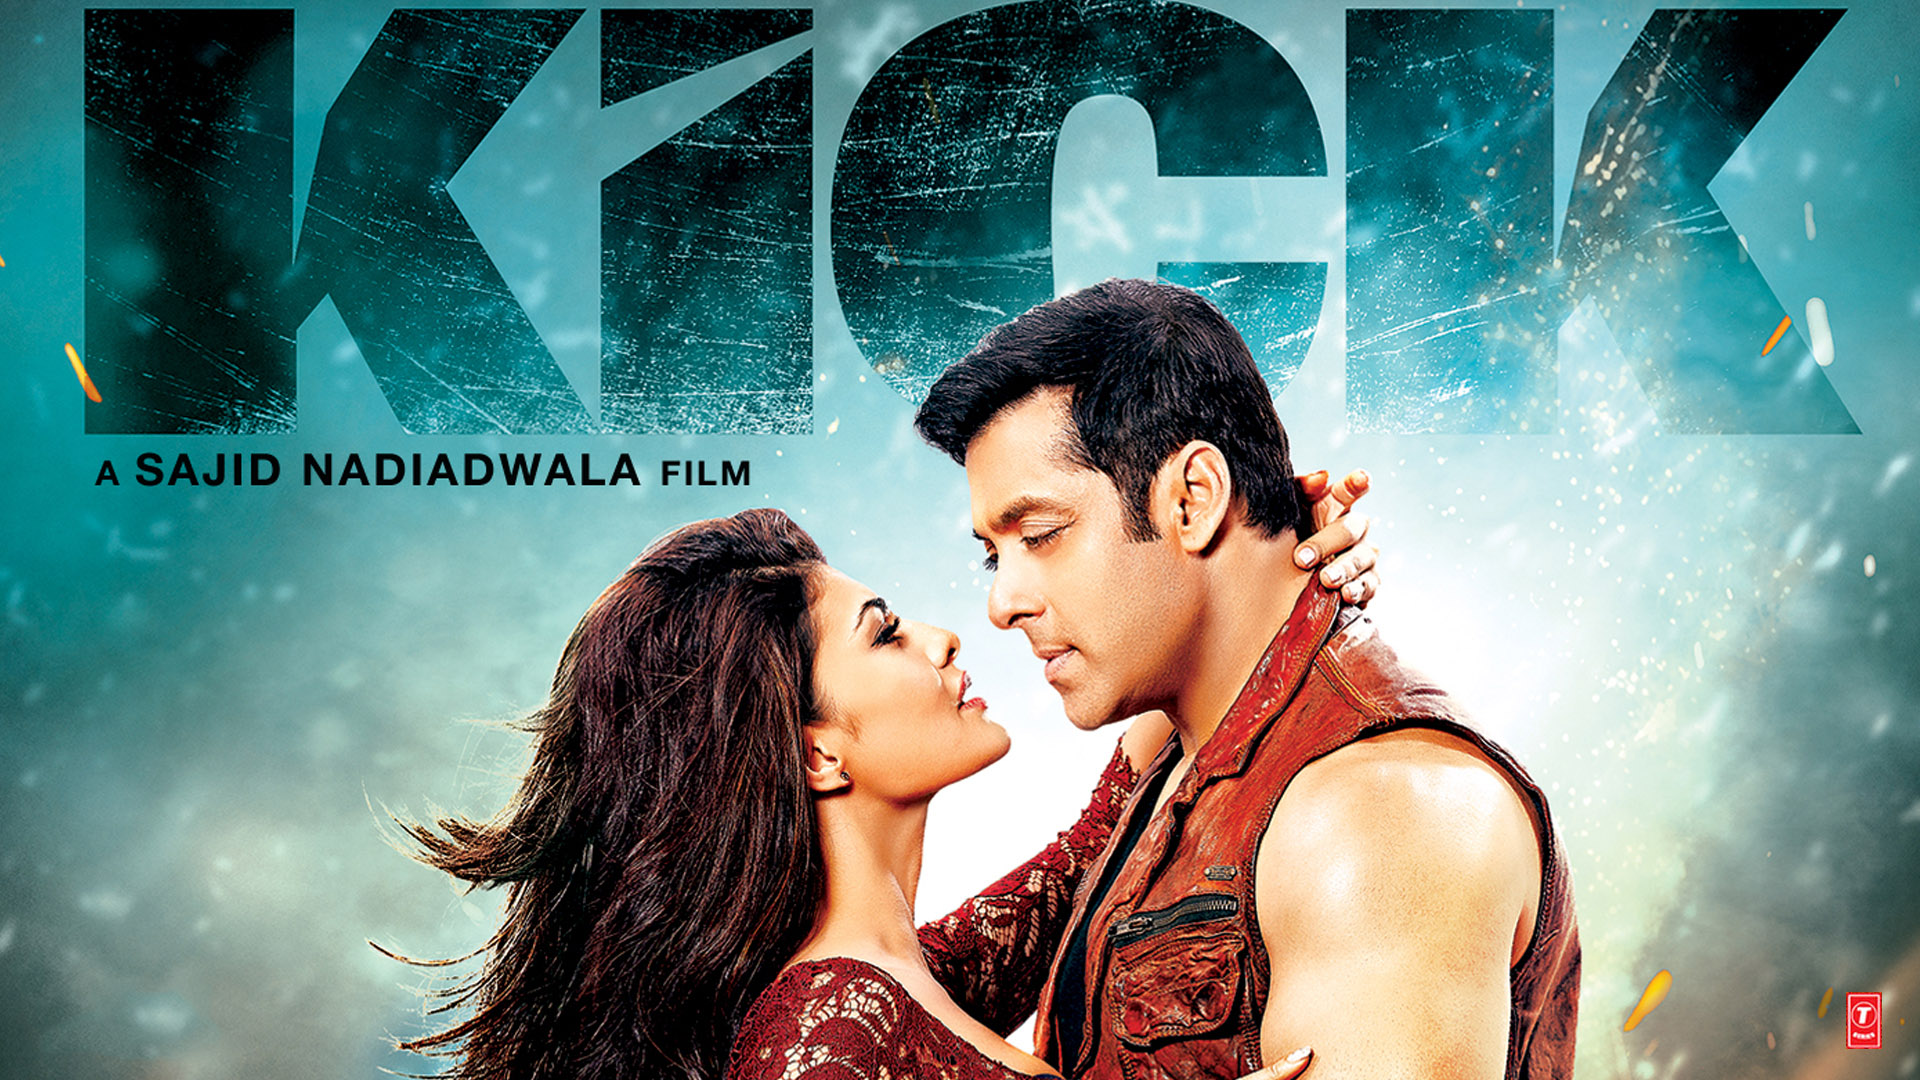 Download HD Bollywood Movies Wallpapers Gallery